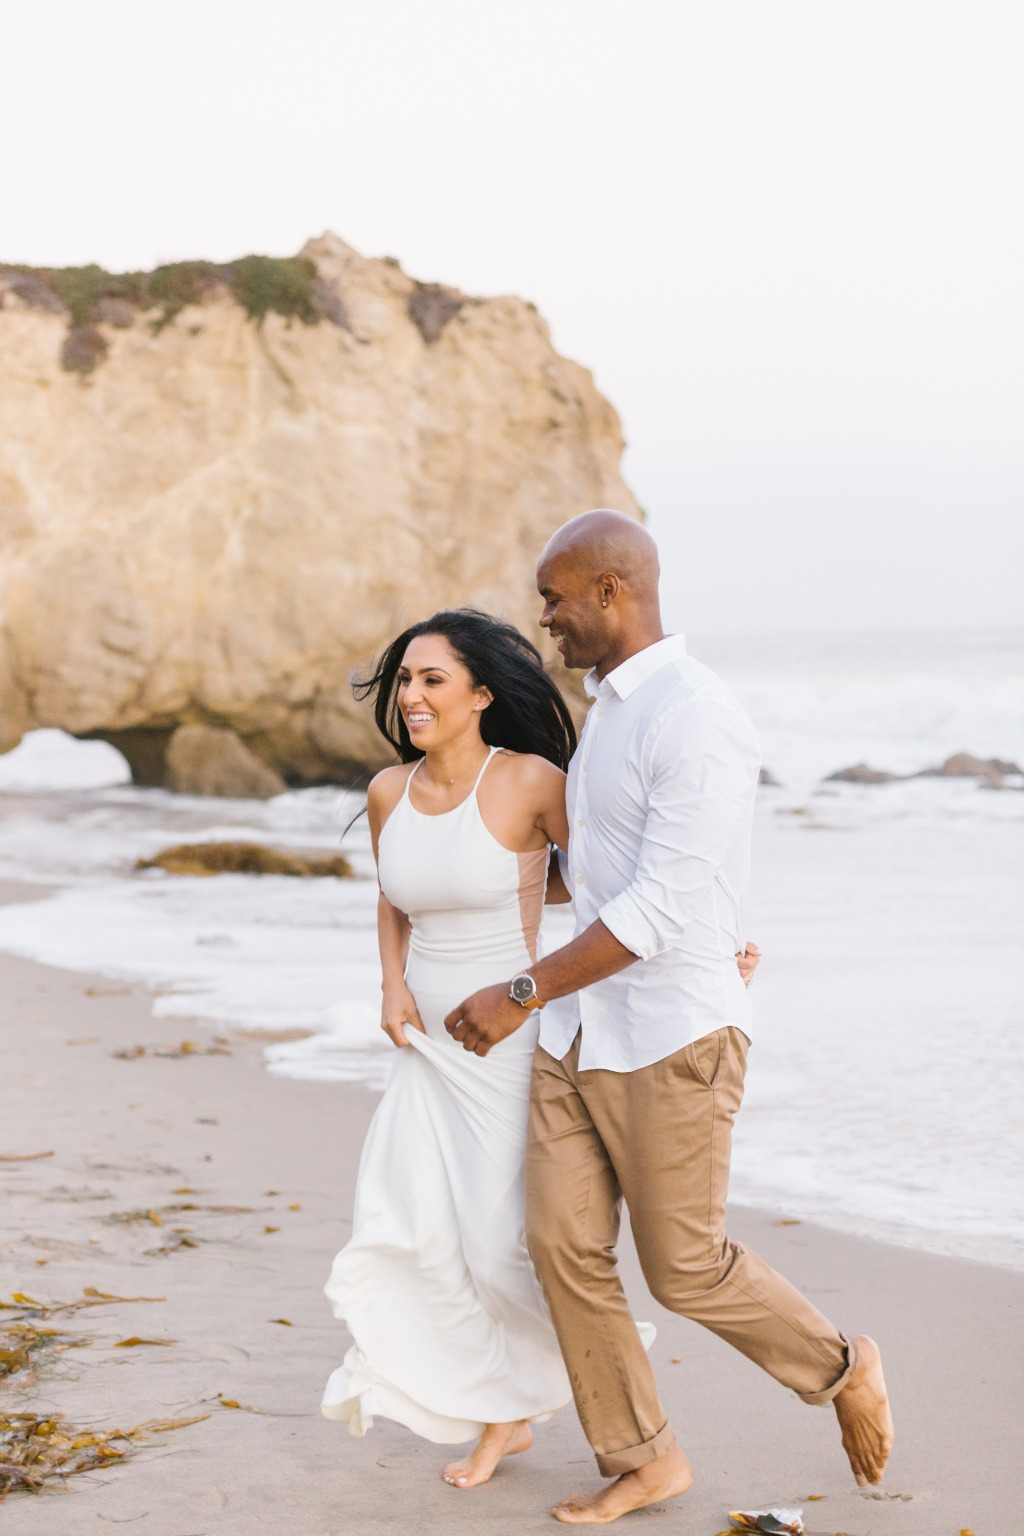 Loved the white and neutral outfits for this Malibu engagement session! It was fun to watch these two explore this gorgeous beach for